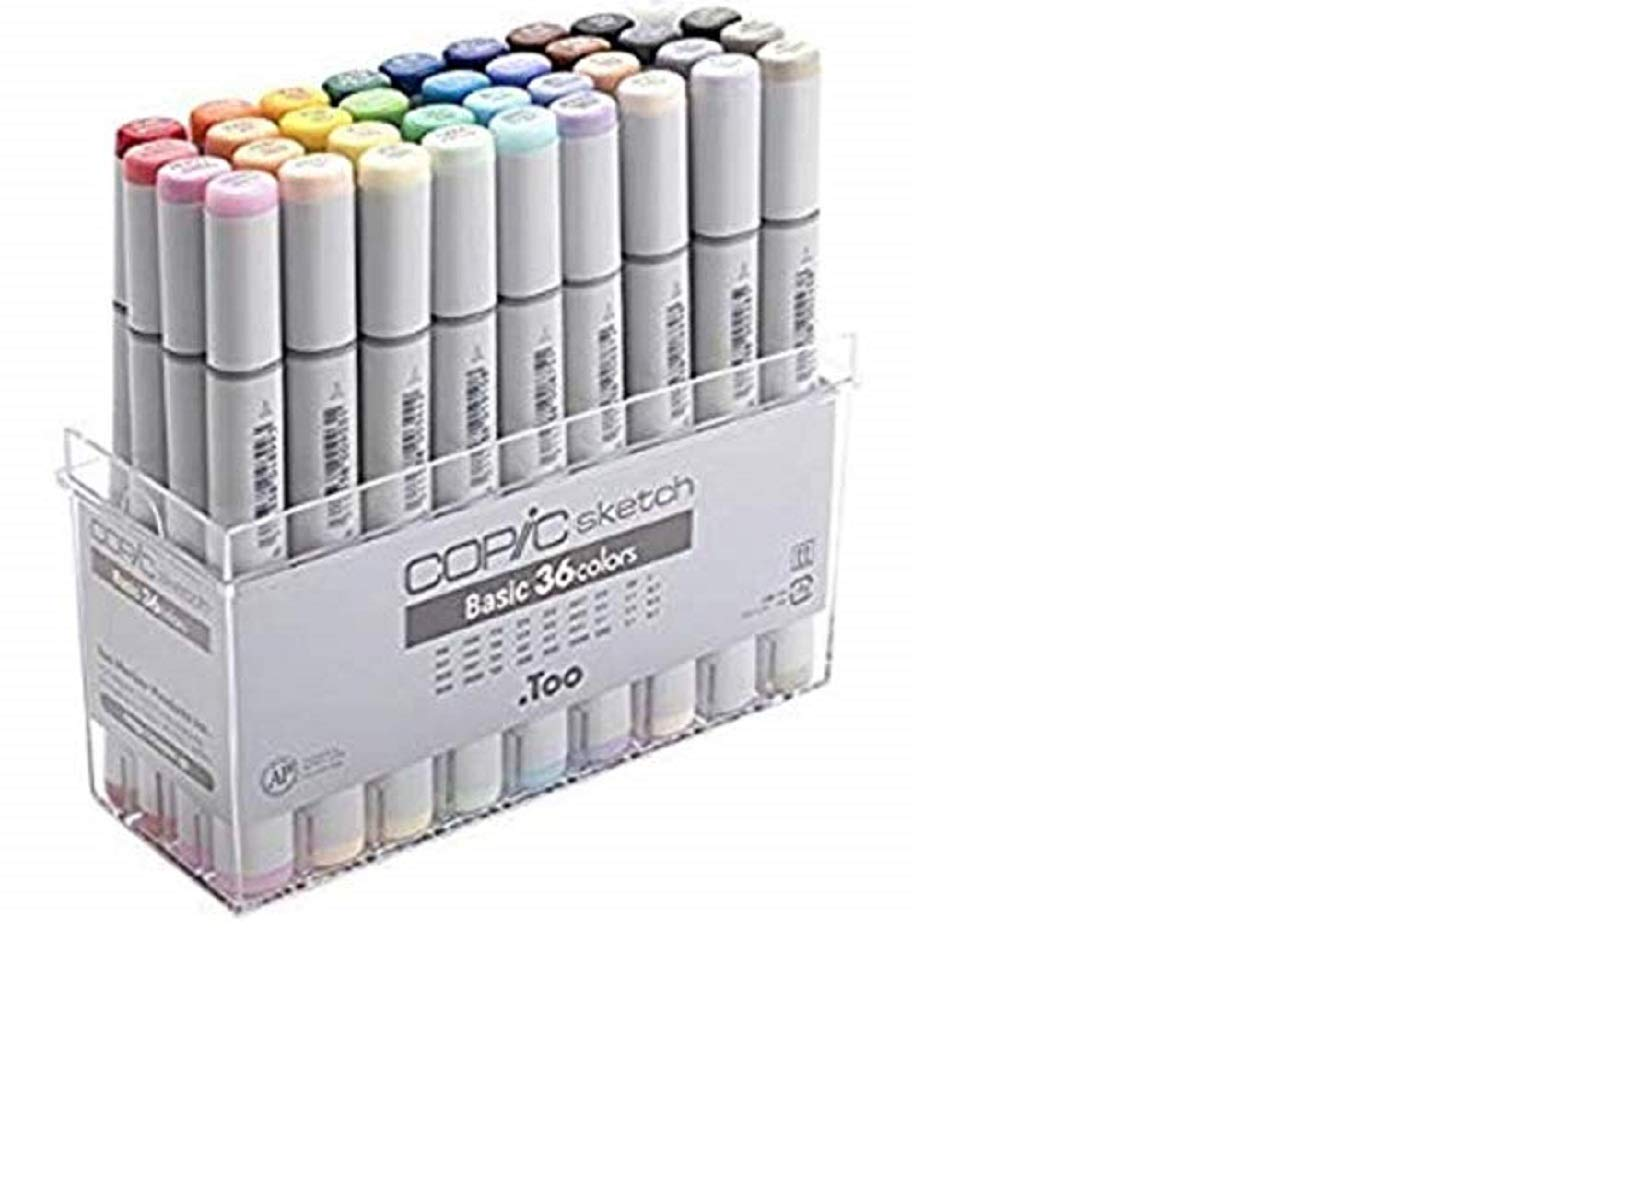 Copic Sketch Marker 36 Piece Sketch Basic Set by Copic